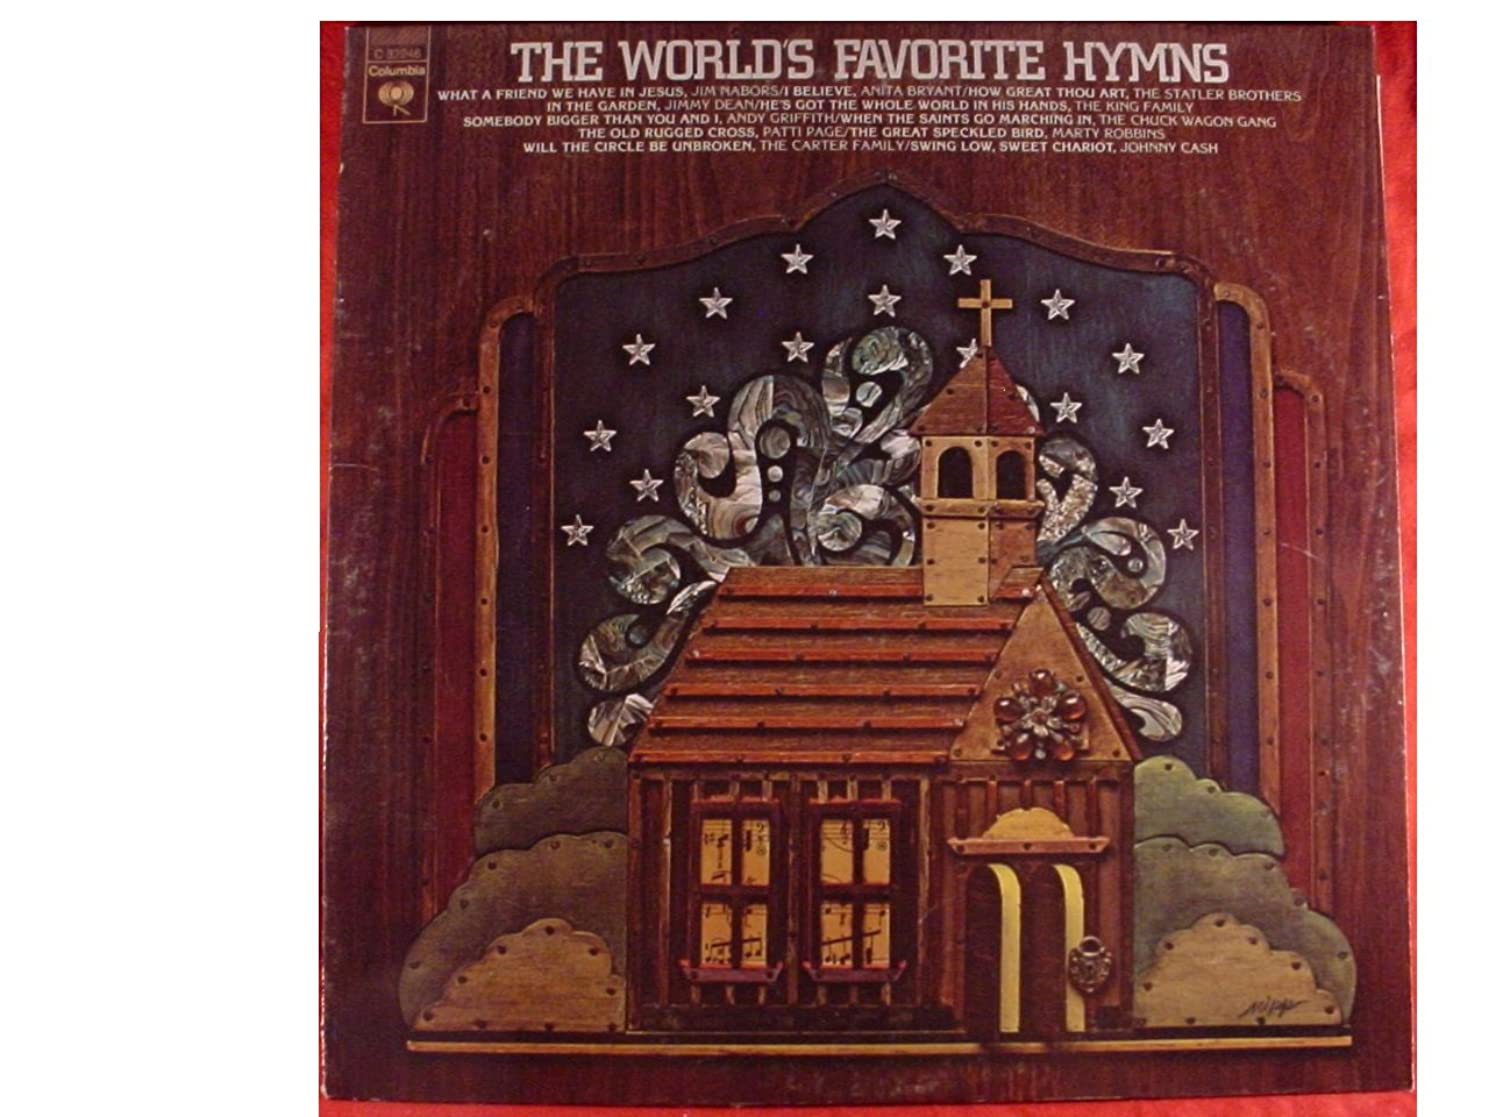 The World's Favorite Hymns